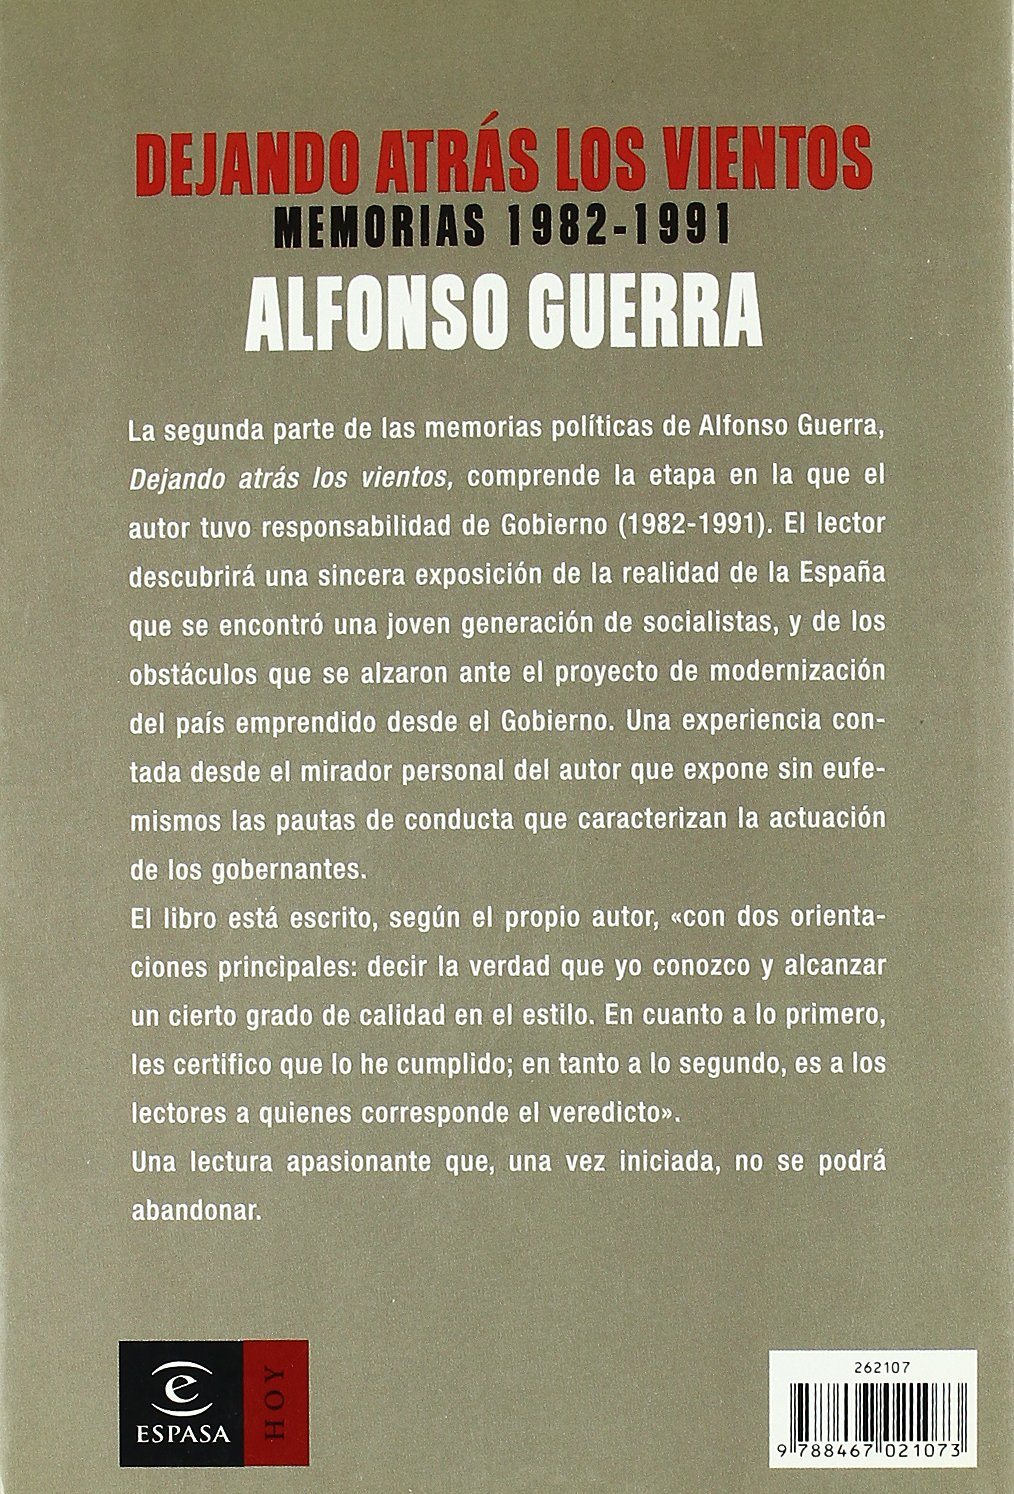 Dictionary of spoken Spanish - Wikisource, the free online library